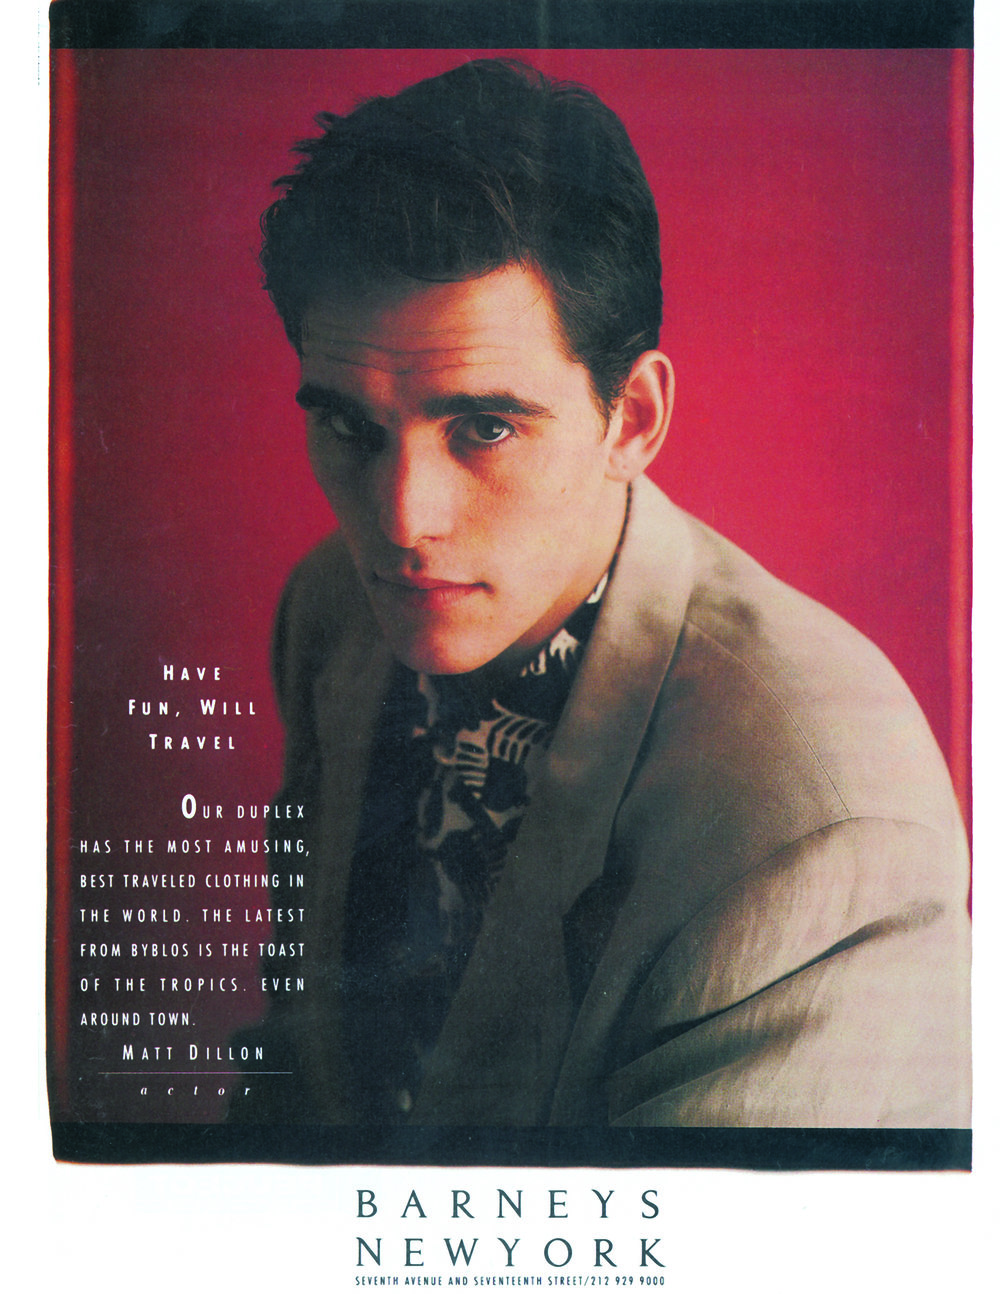 BARNEYS-CELEB-MATT DILLON.jpg